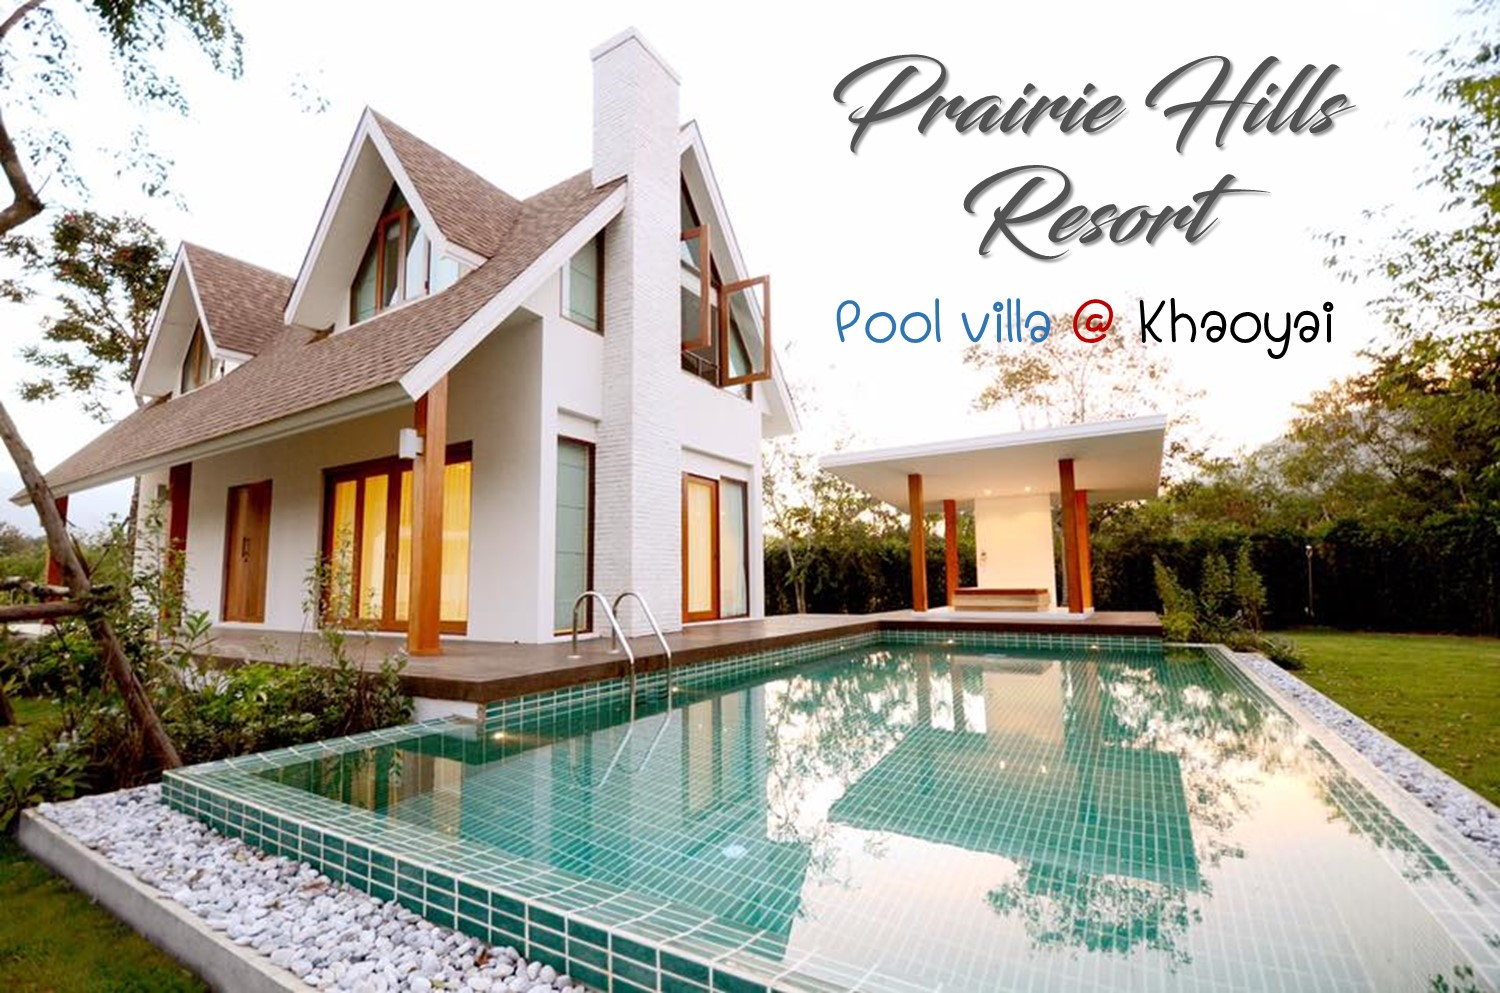 Prairie Hills Resort pool villa กลางขุนเขา